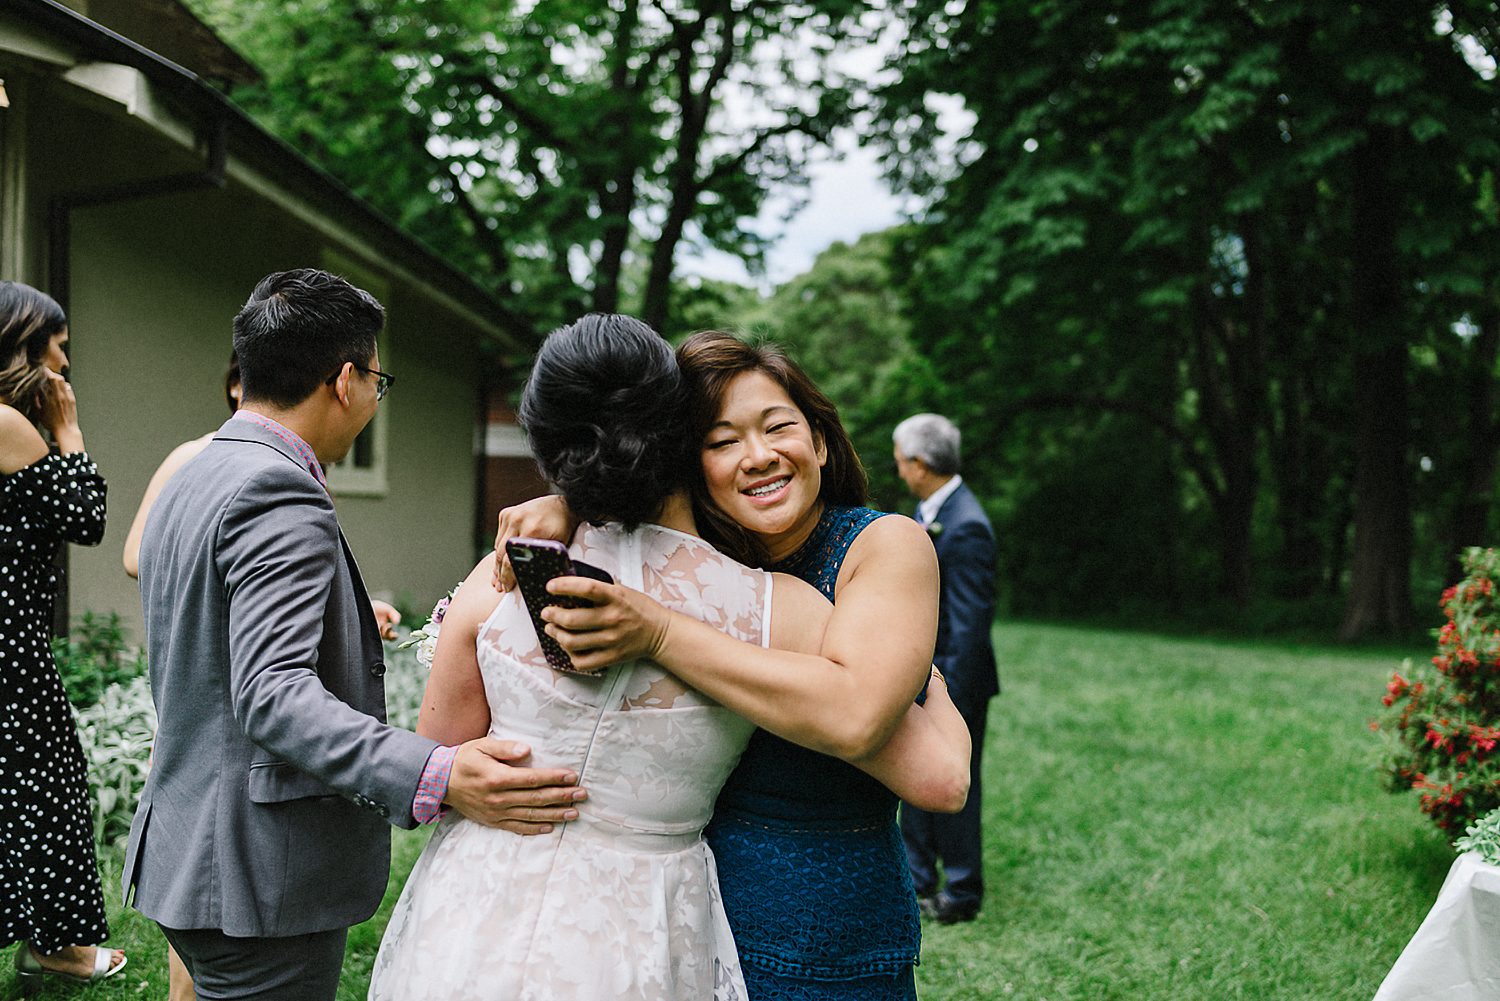 Outdoor-CeremonyIdeas-Bride-and-Groom-Exit-Toronto-Vintage-Bride-Outdoor-Forest-Wedding-Venue-High-Park-Downtown-Toronto_Candid-Editorial-Documentary-Wedding-Photographers-Sweet-Candid-Moment-Between-Groom--and-Bride-Hugging-Sister.jpg